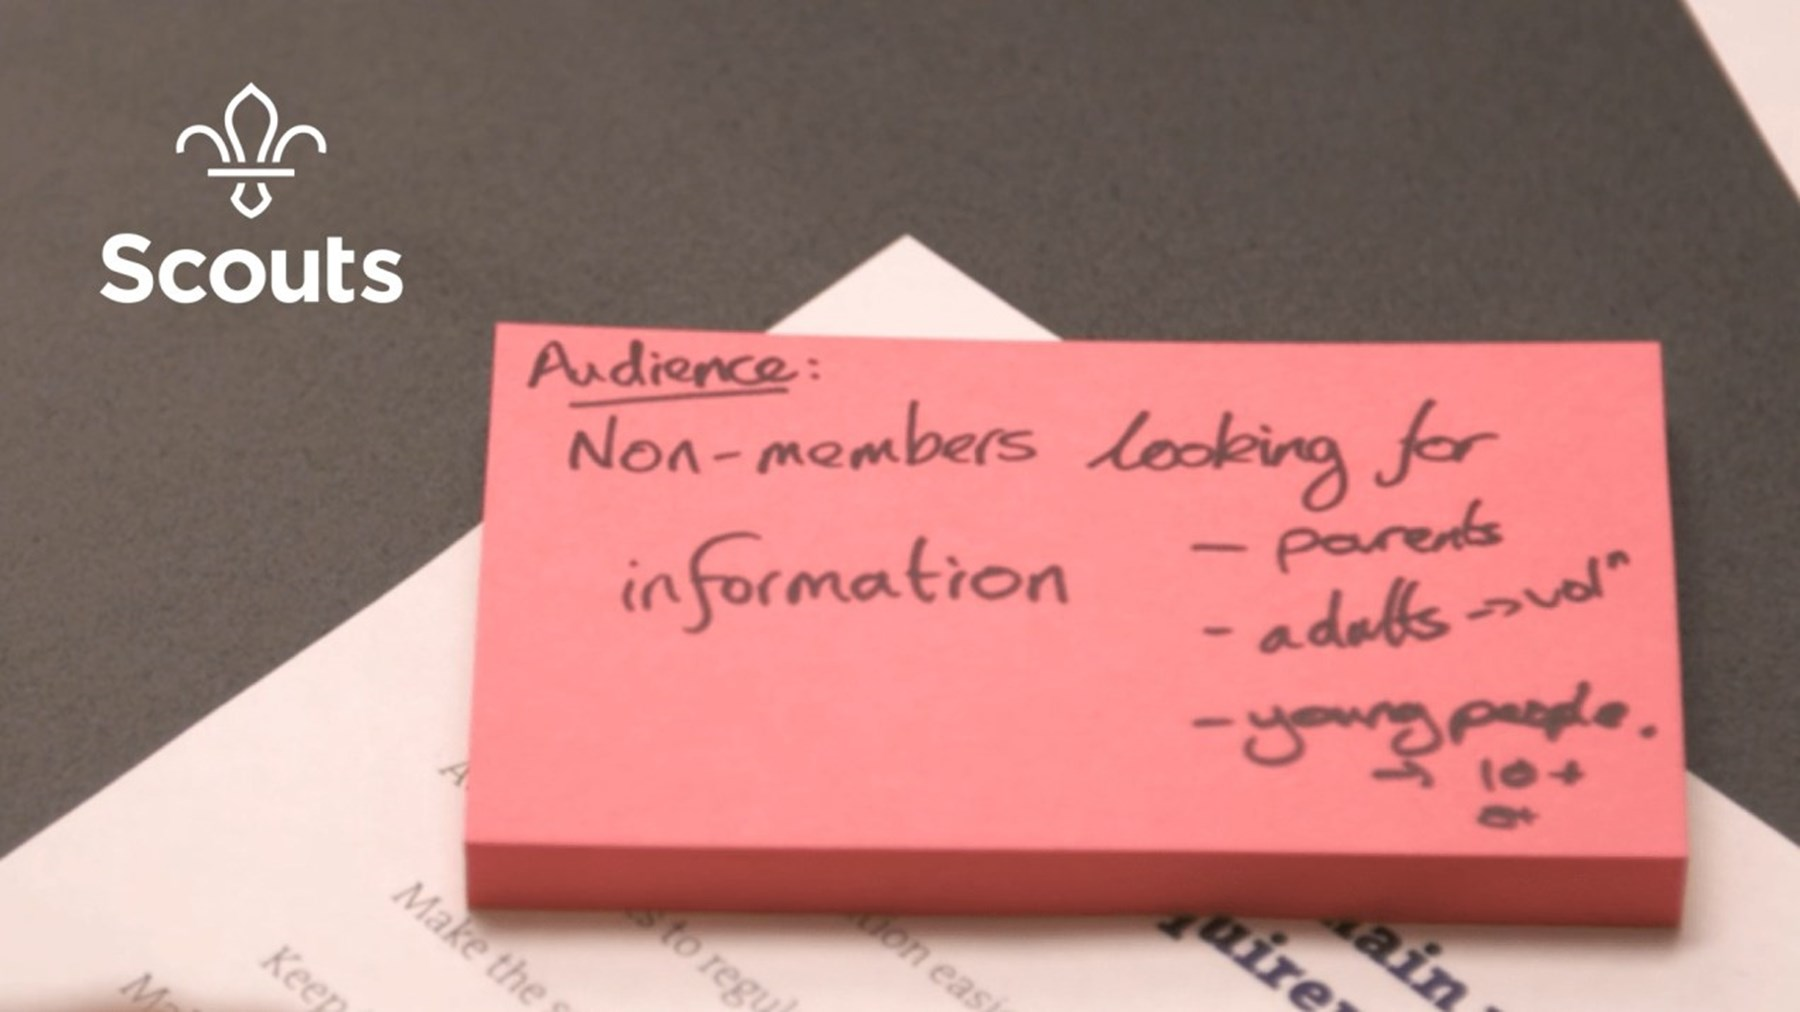 Post it note showing the audience for the website